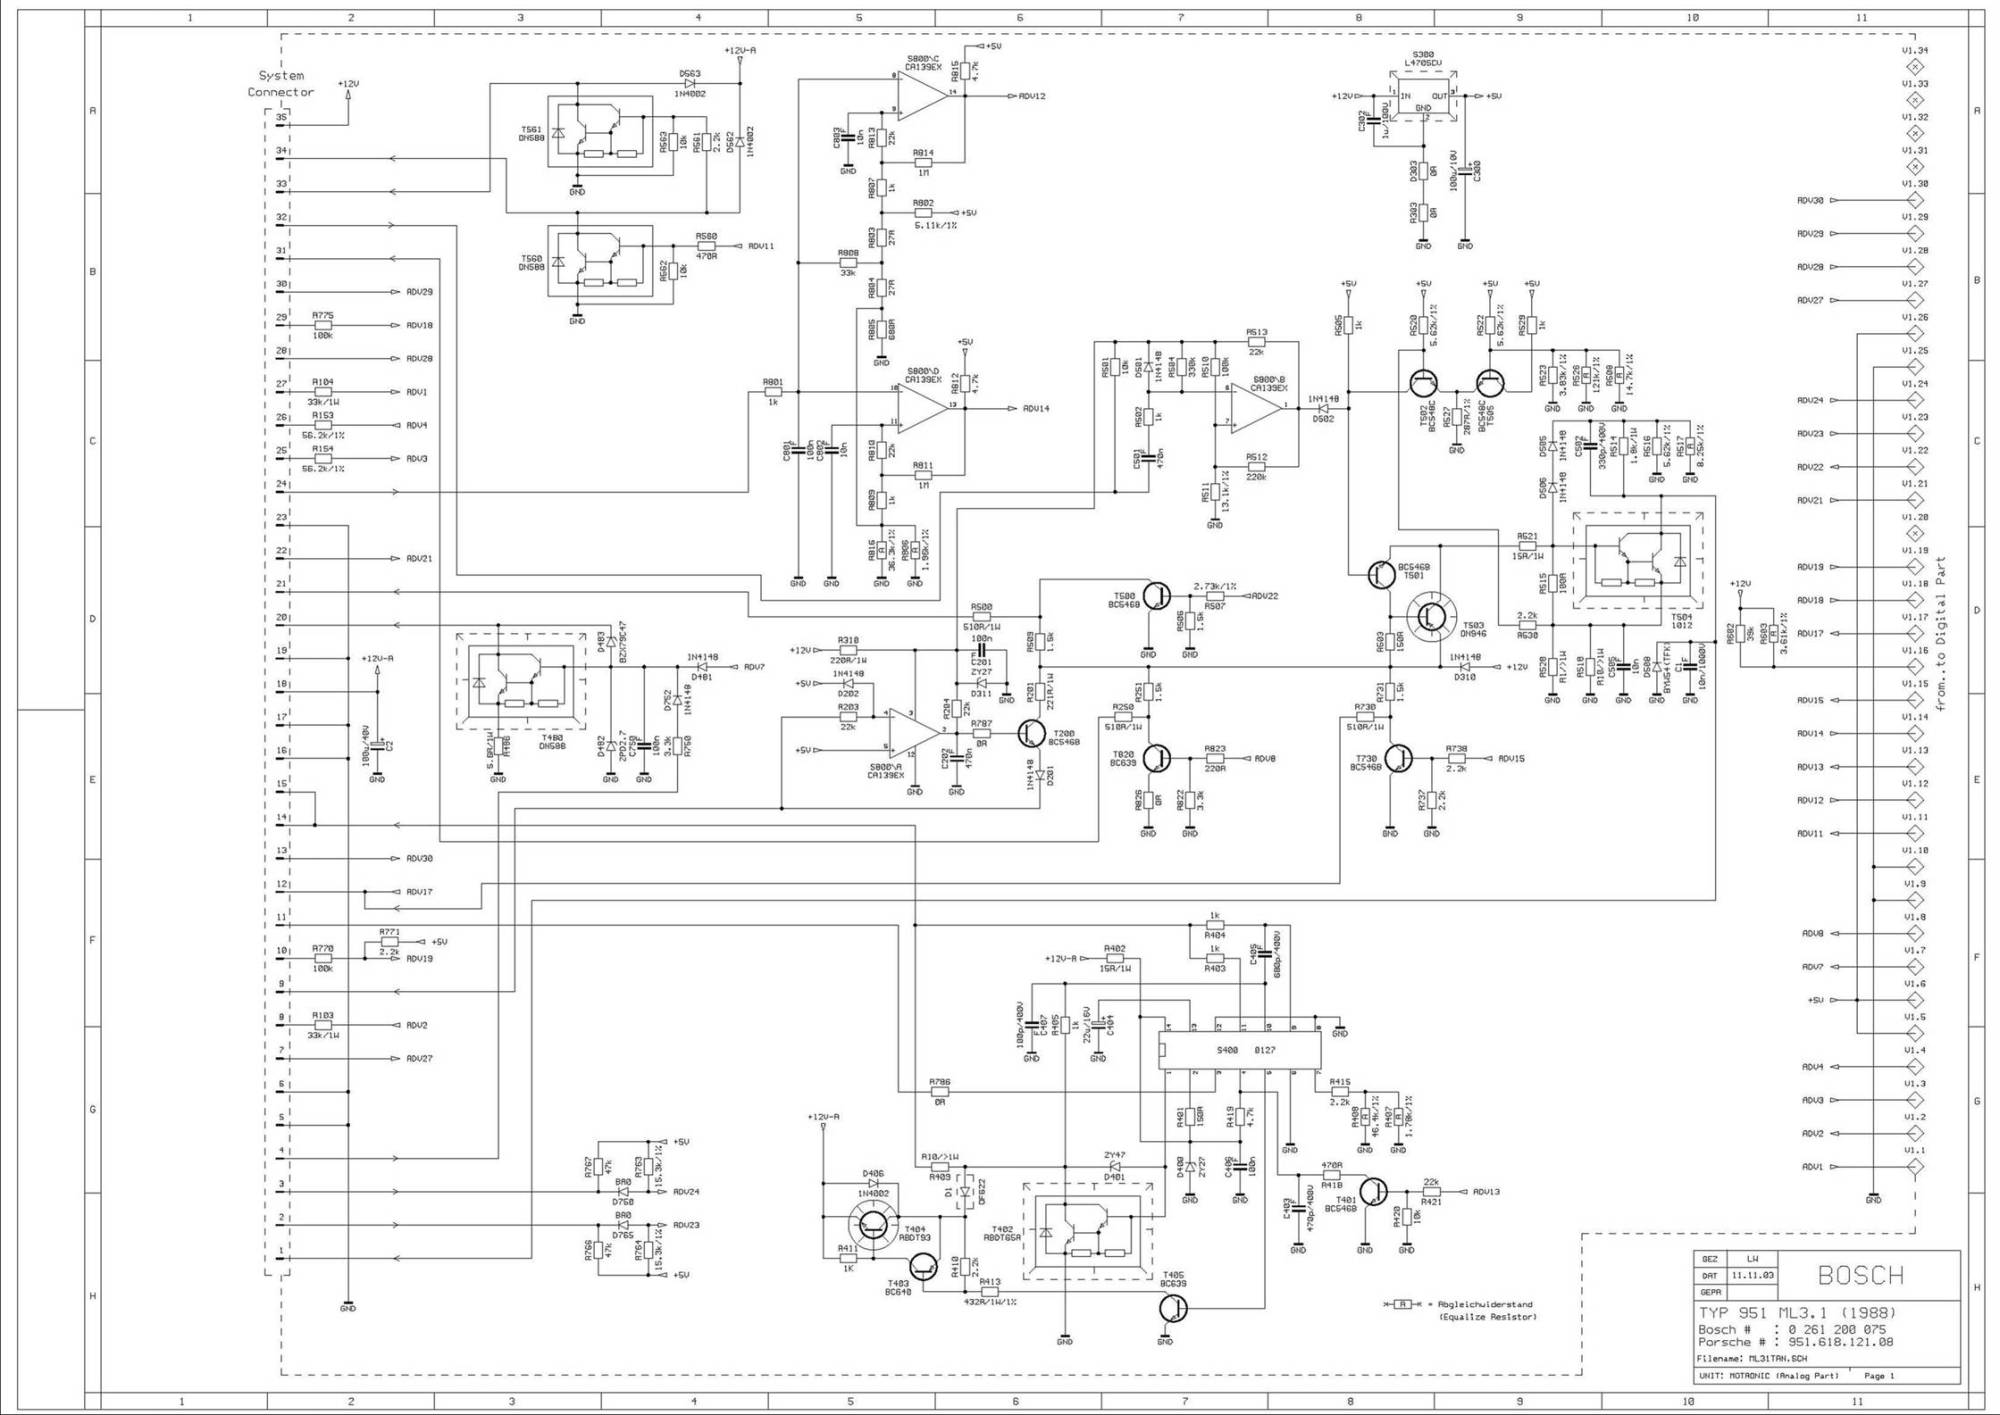 hight resolution of hight resolution of wiring diagrams for 86 porsche 944 another wiring diagram porsche 944 turbo wiring